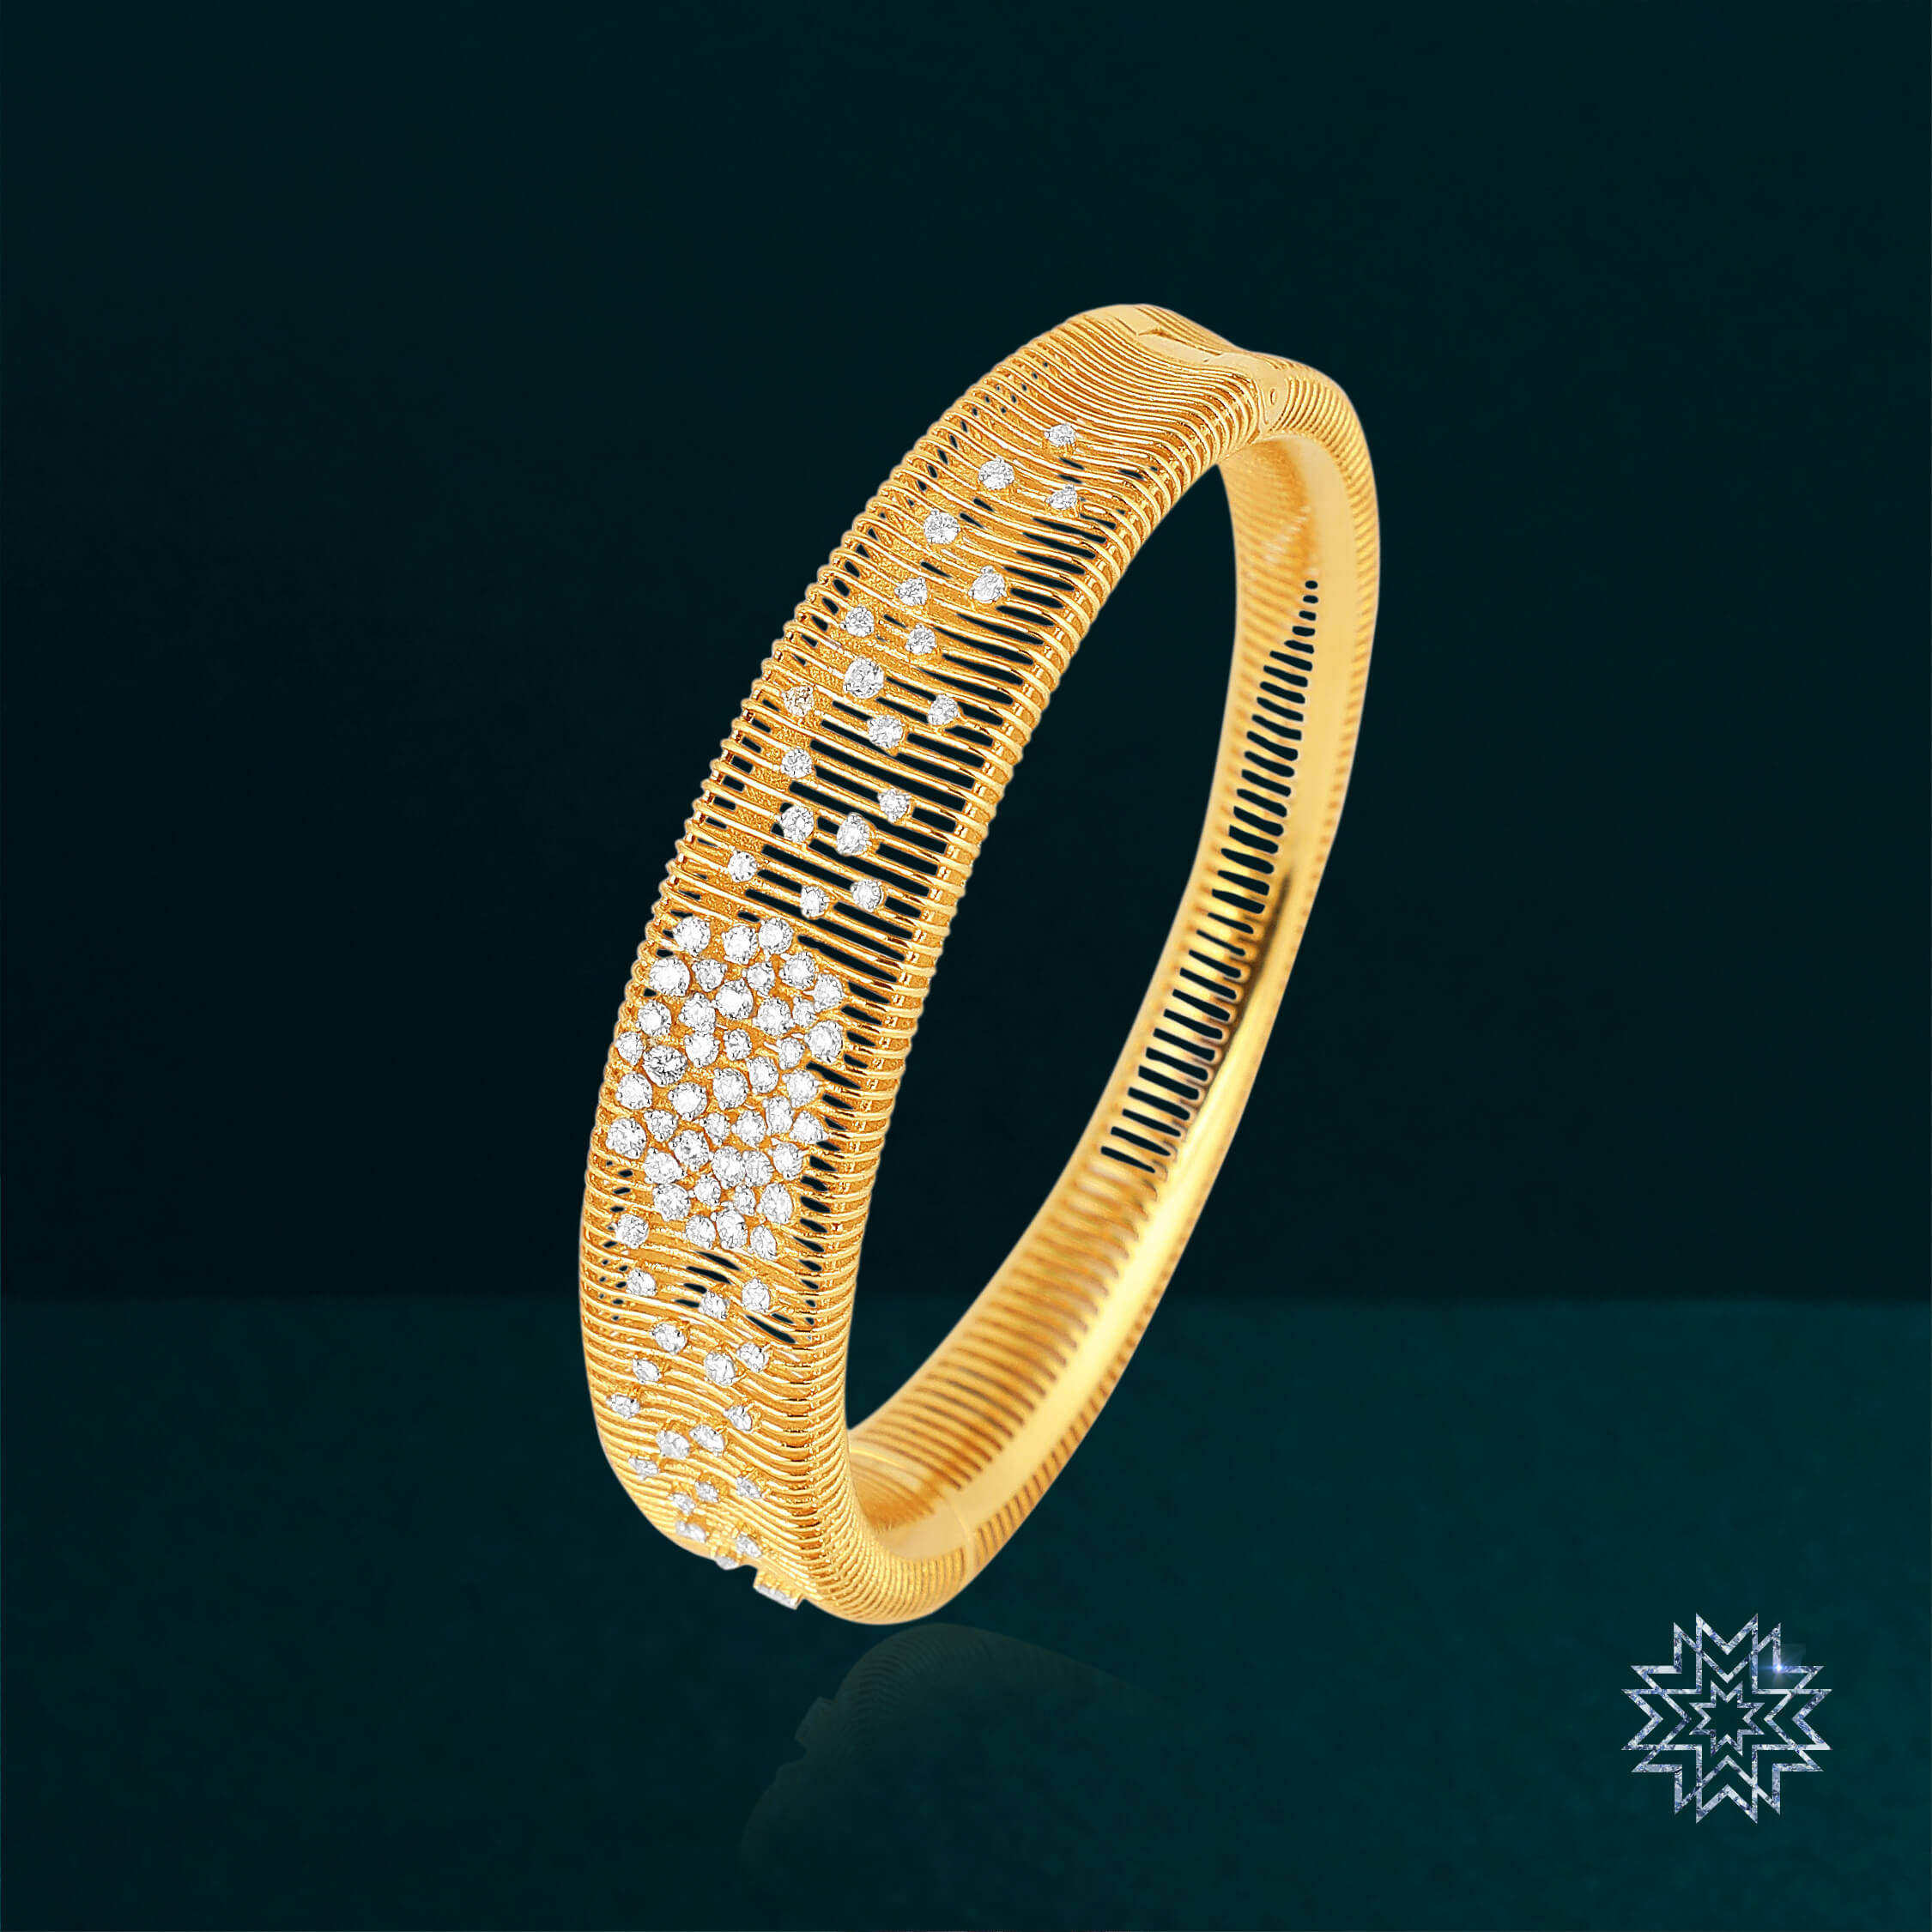 A beautiful symphony of gold and diamonds for your special night!